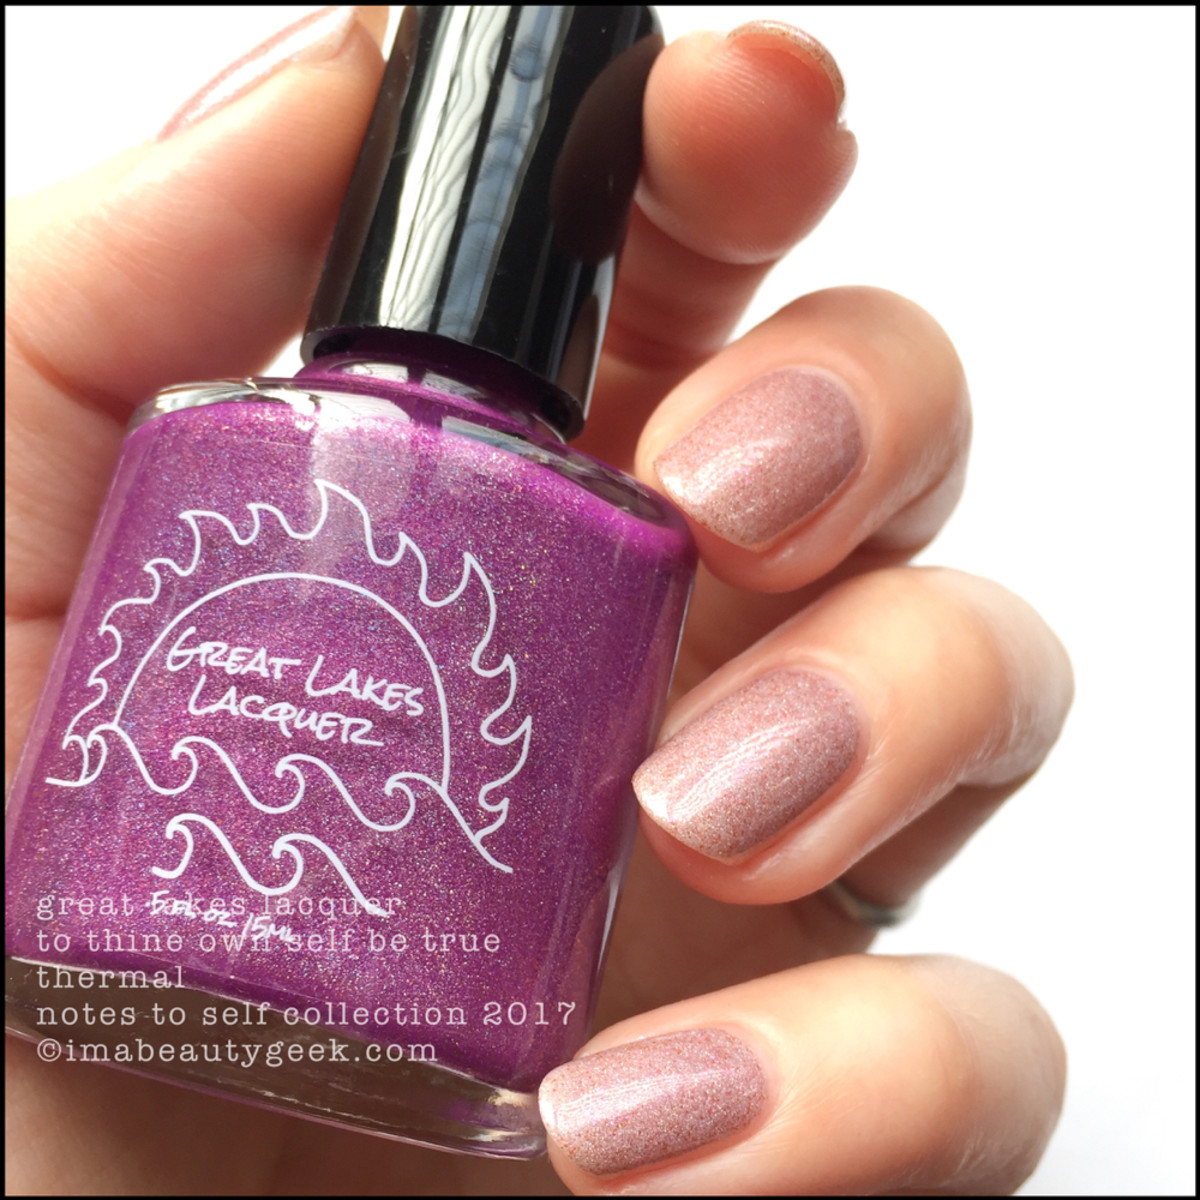 Great Lakes Lacquer To Thine Own Self Be True 2 _ Great Lakes Lacquer Notes to Self Thermal Collection 2017